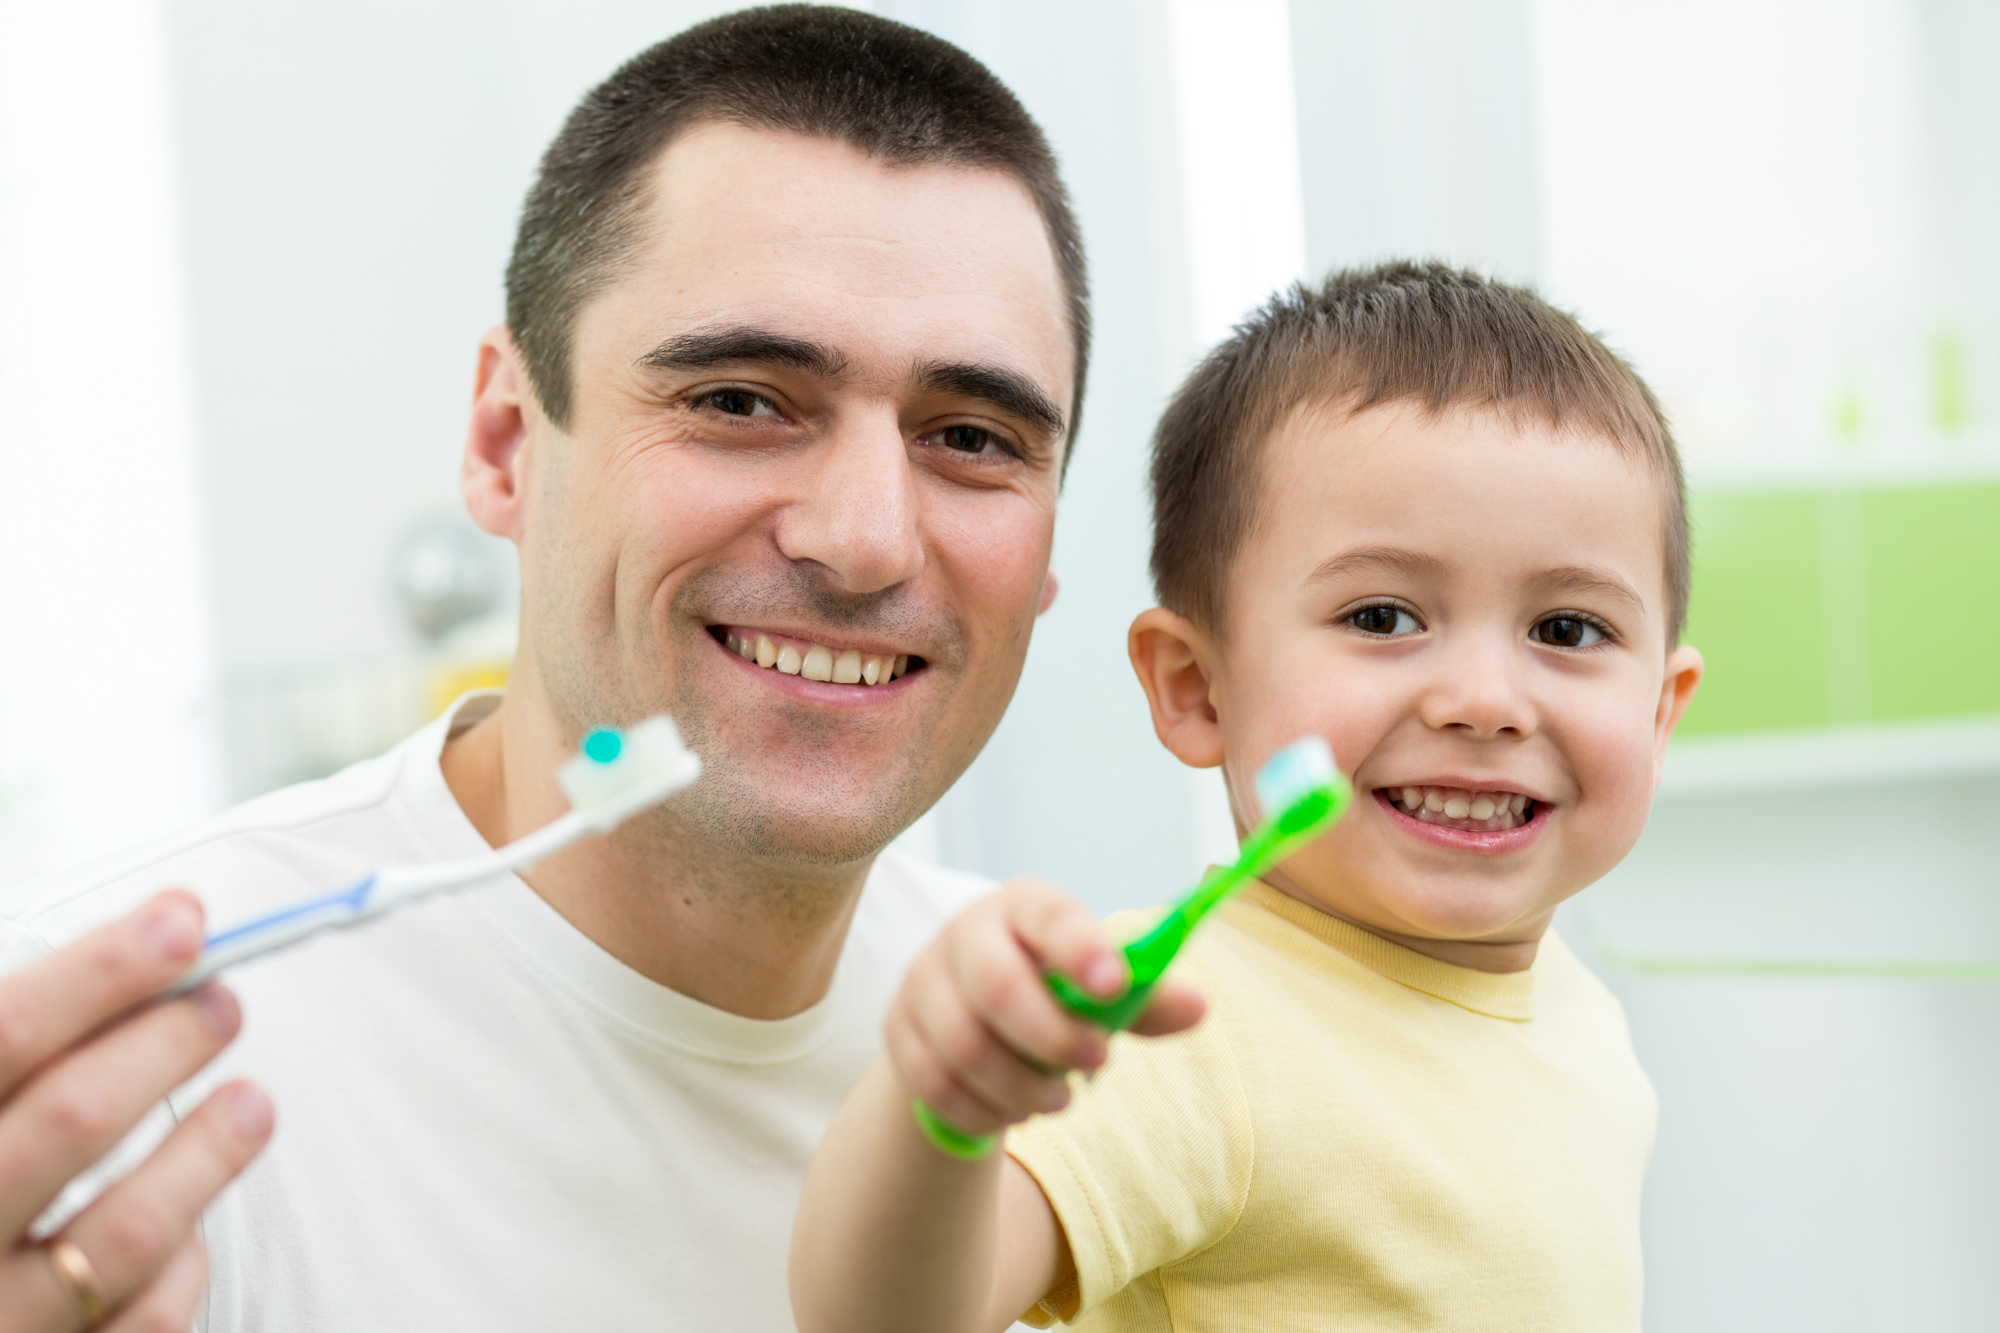 Brushing teeth with father and child, son, Dr. Nguyen V. Nguyen, DMD DDS, Magnolia Dental, Dentist, Orlando, Waterford Lakes, Avalon Park, Alafaya, Colonial, Cosmetic, Family, Pediatric, Implant, Braces, Orthodontics, Best, Cone beam CT, Emergency, Dentures, Veneers, Zoom Whitening